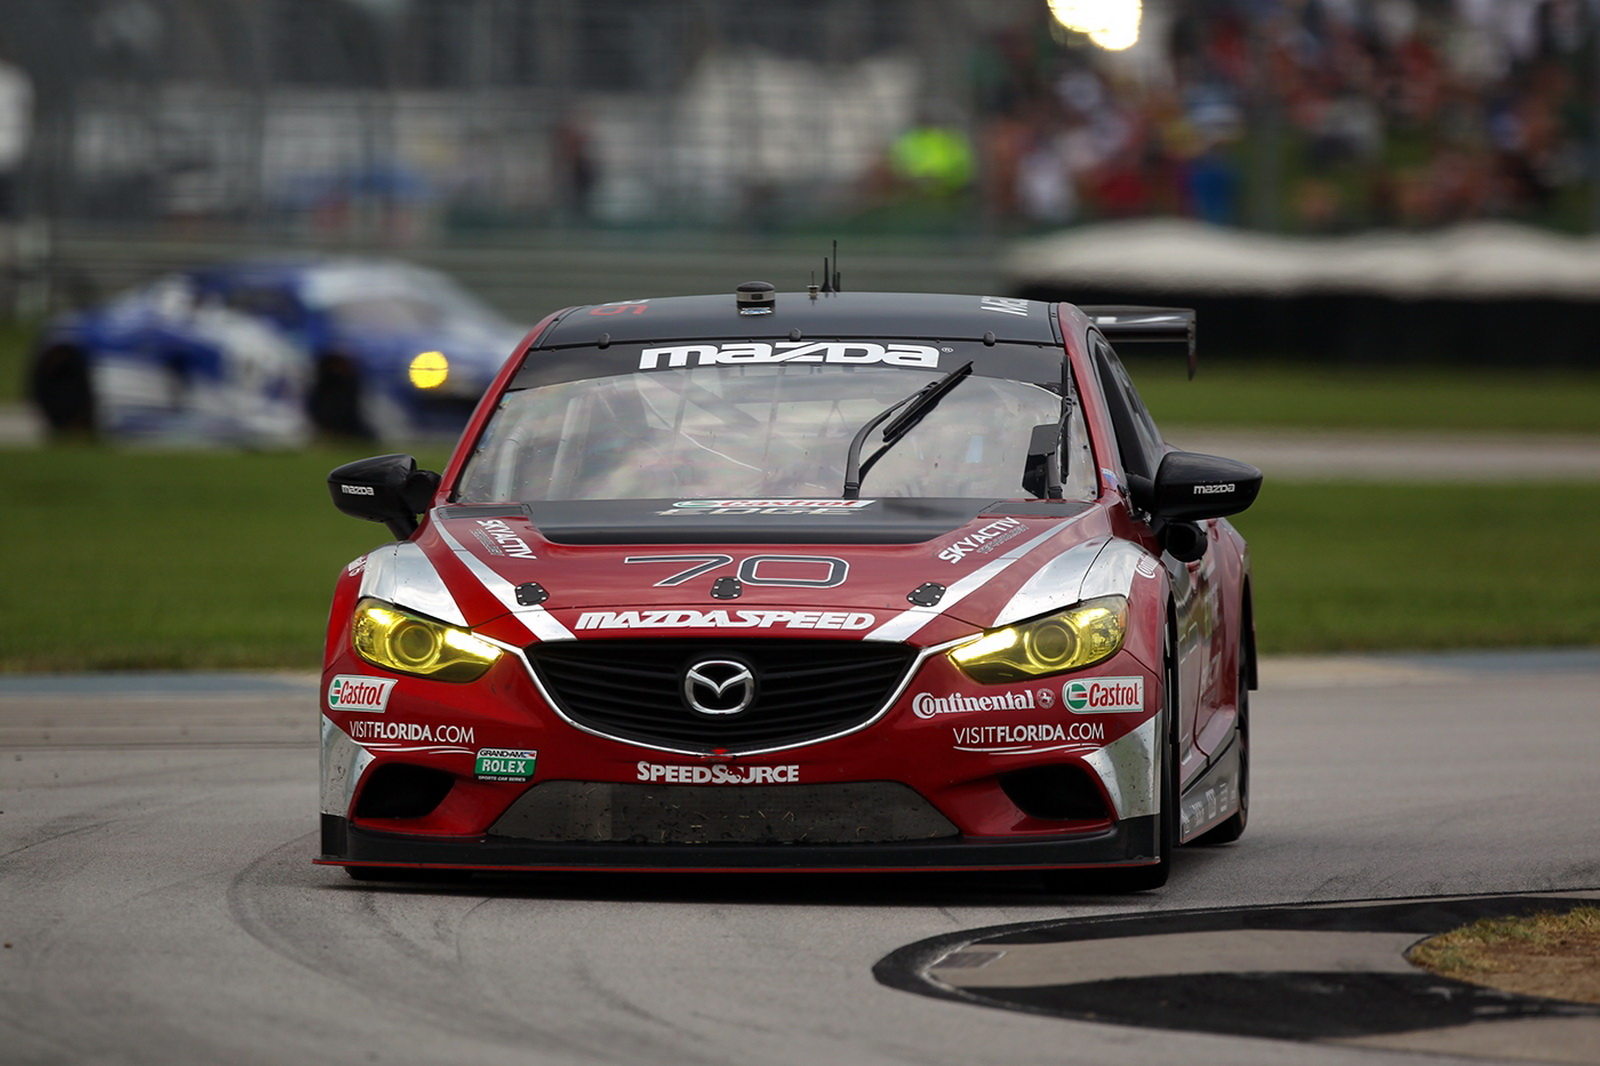 mazda6 skyactiv wins at indianapolis motor speedway. Black Bedroom Furniture Sets. Home Design Ideas